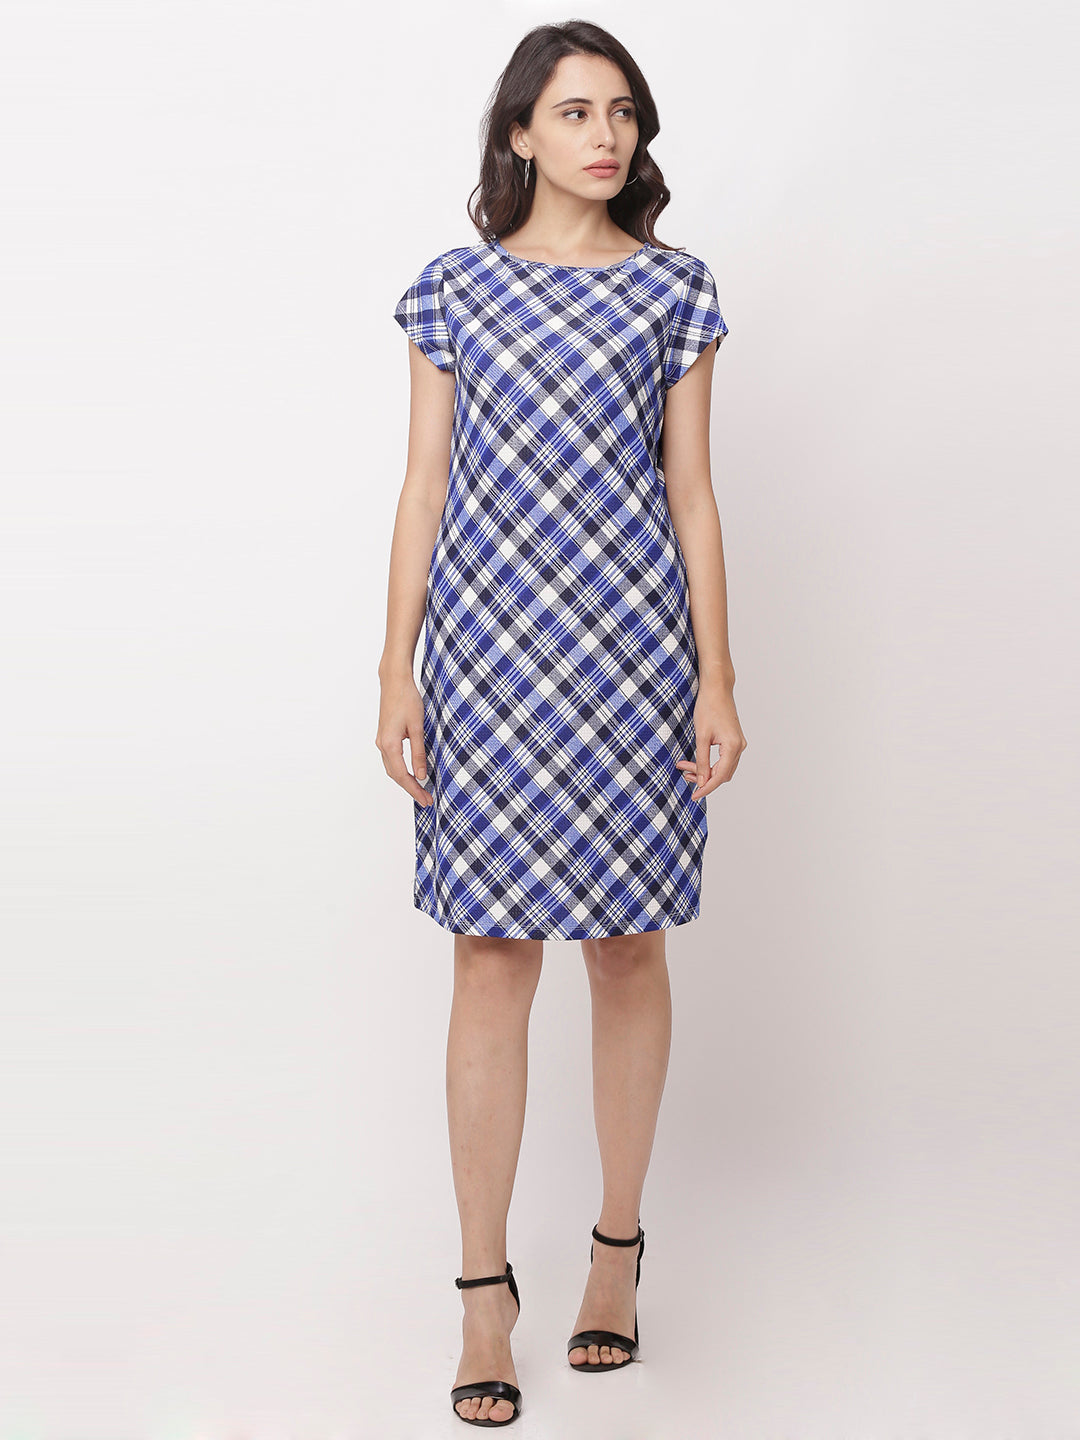 Globus Navy Blue Checked Casual Dress-5